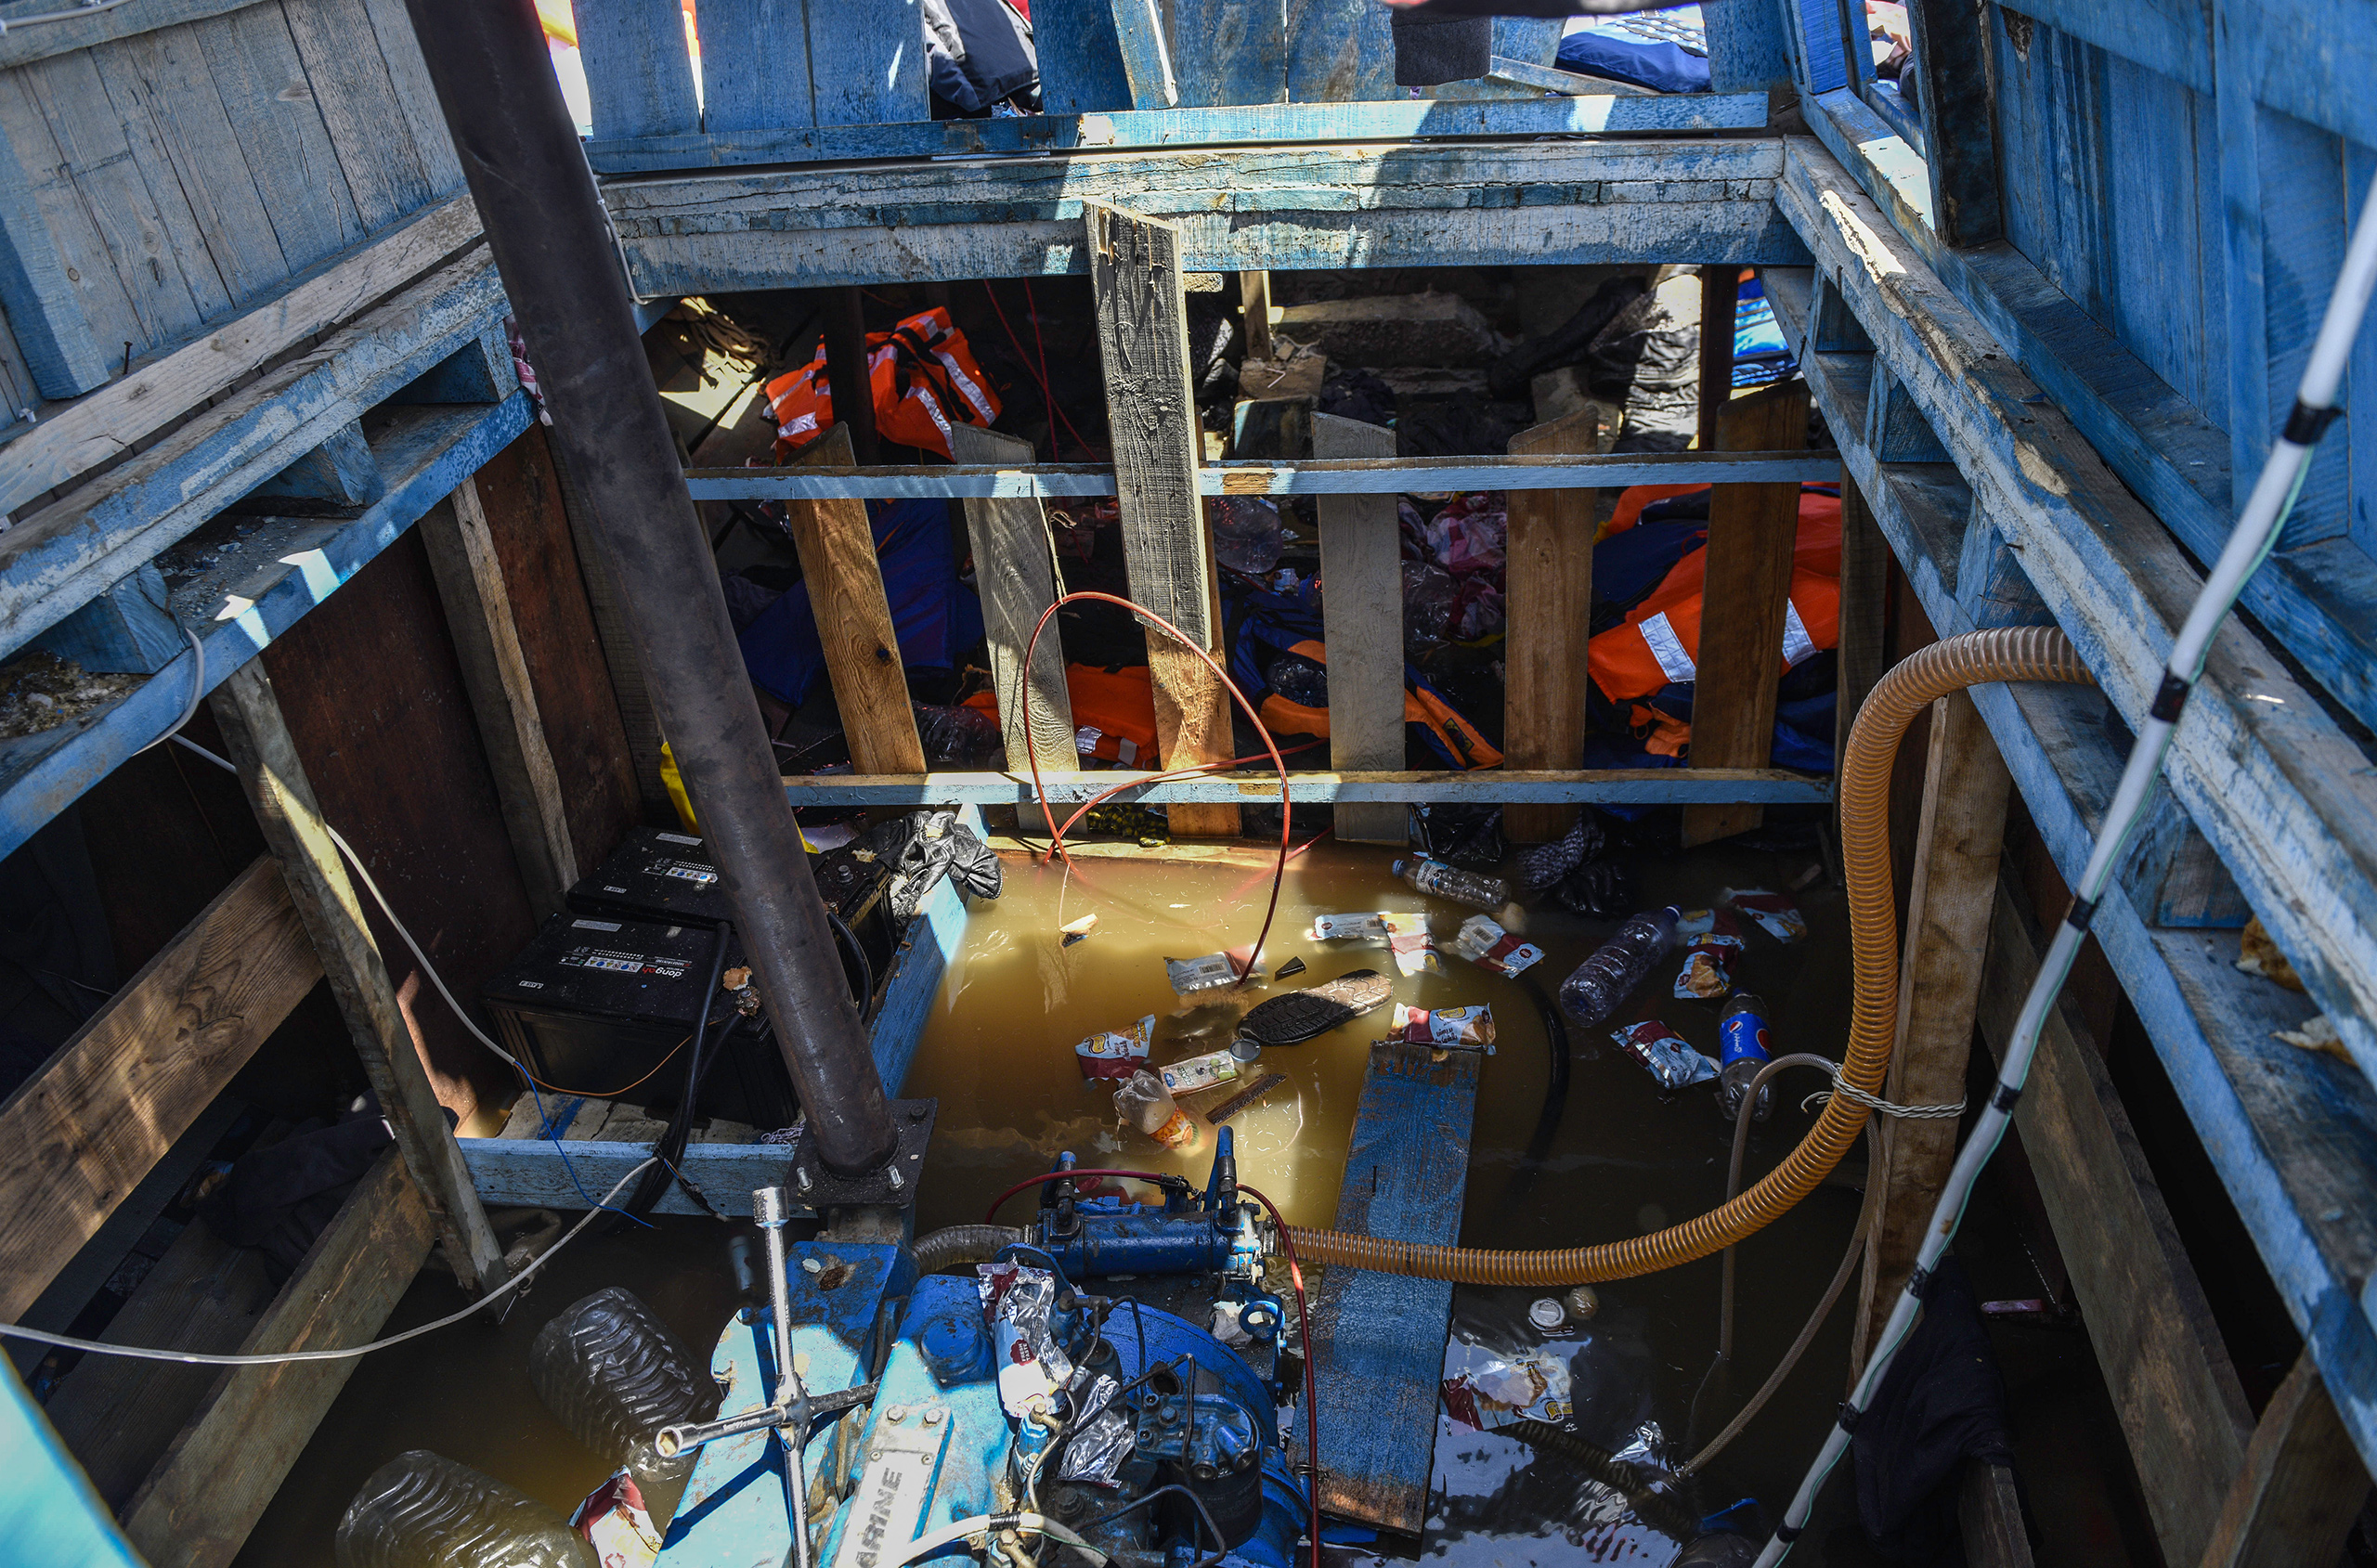 Discarded life jackets, clothing and trash in the empty leaking vessel after the rescue in the Mediterranean, Aug. 21, 2016.